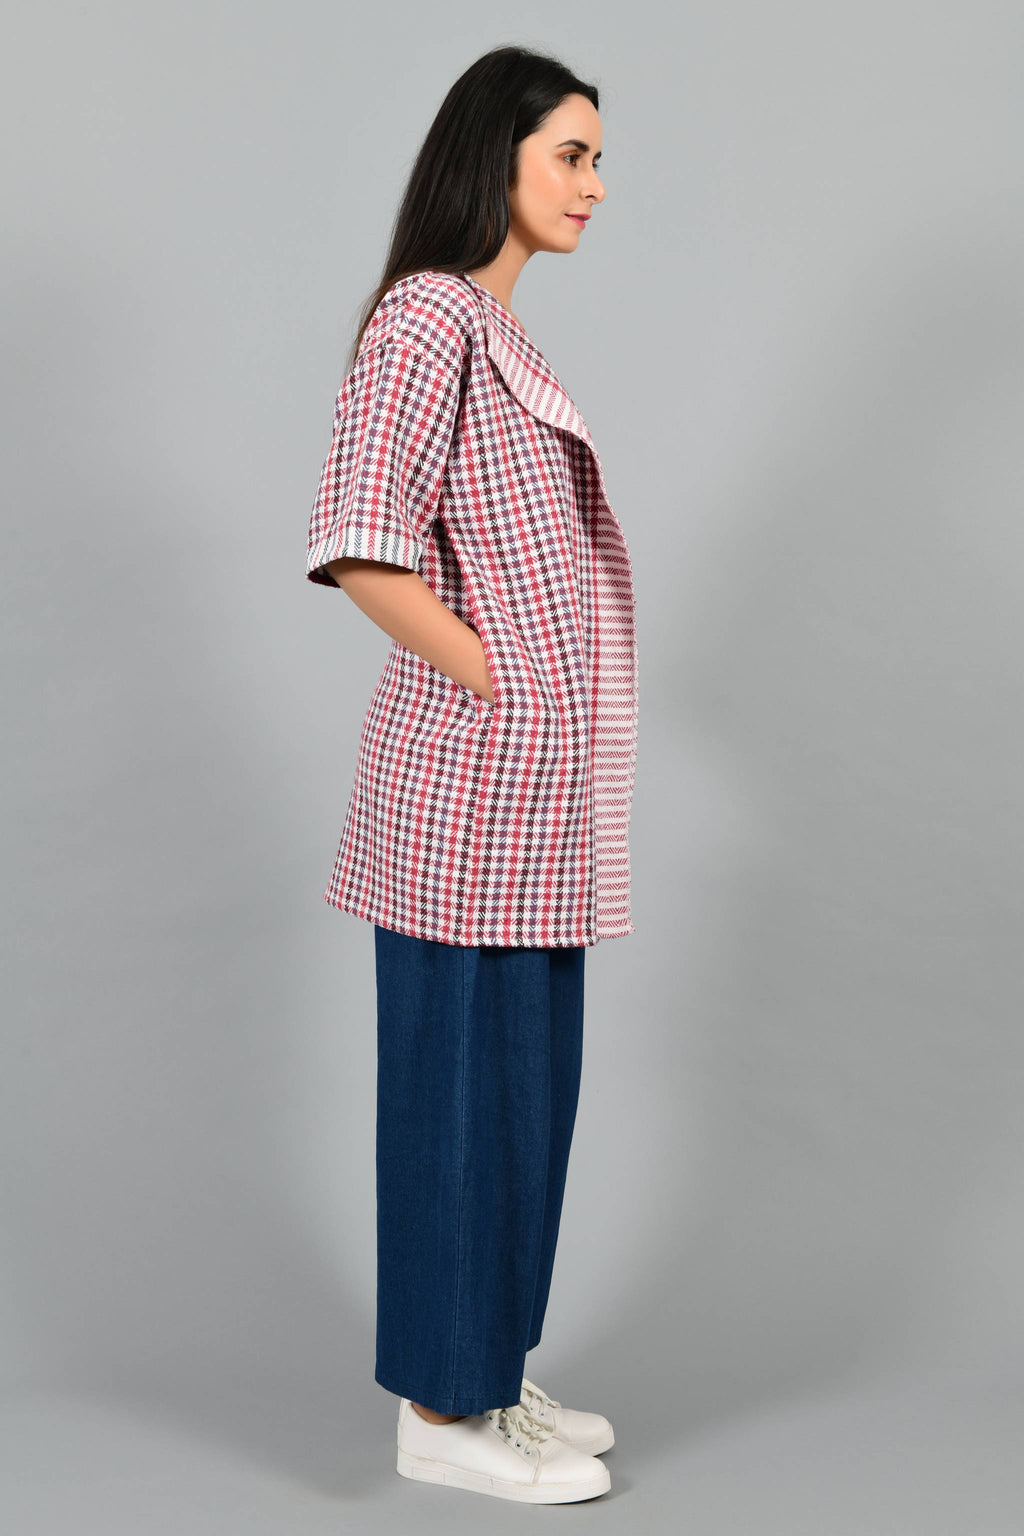 Side pose of an Indian Womenswear female model wearing Red and Blue handspun and handwoven khadi long Jacket over an off-white cashmere cotton dress by Cotton Rack.